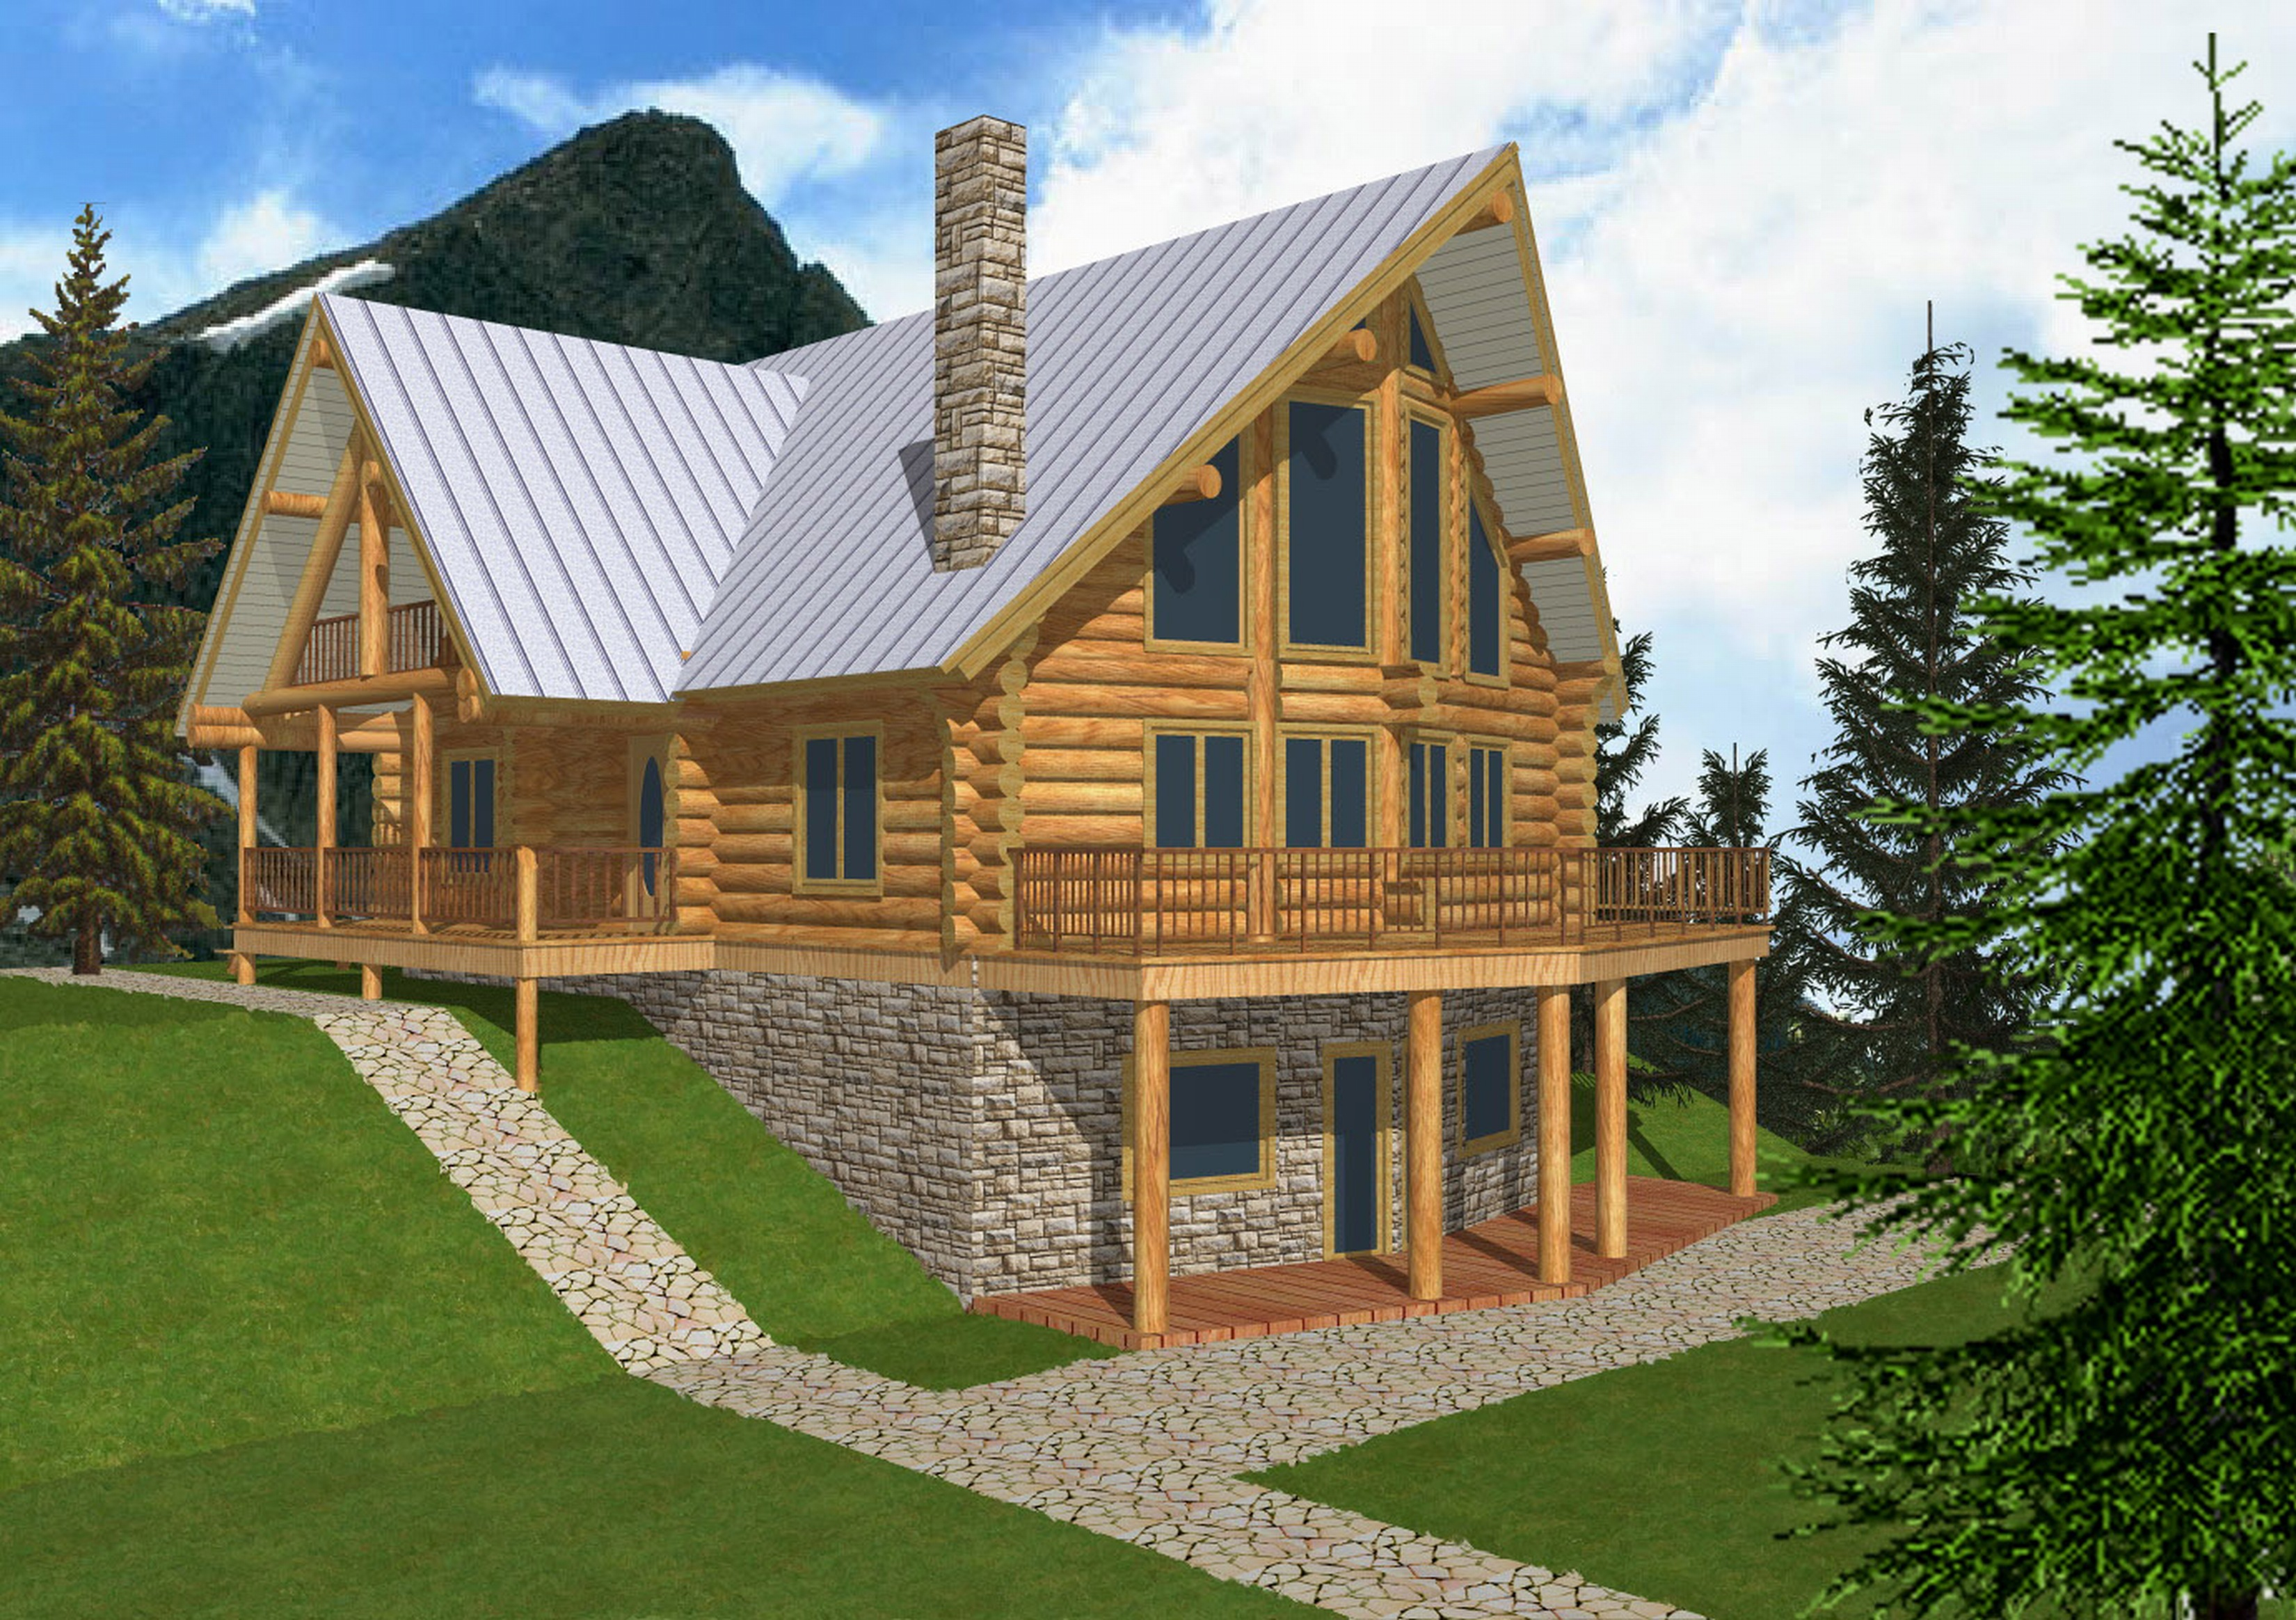 log cabin house plans with basement natashamillerweb rh natashamillerweb com Basement Storage with Building Plans Small House Plans with Garage and Basement